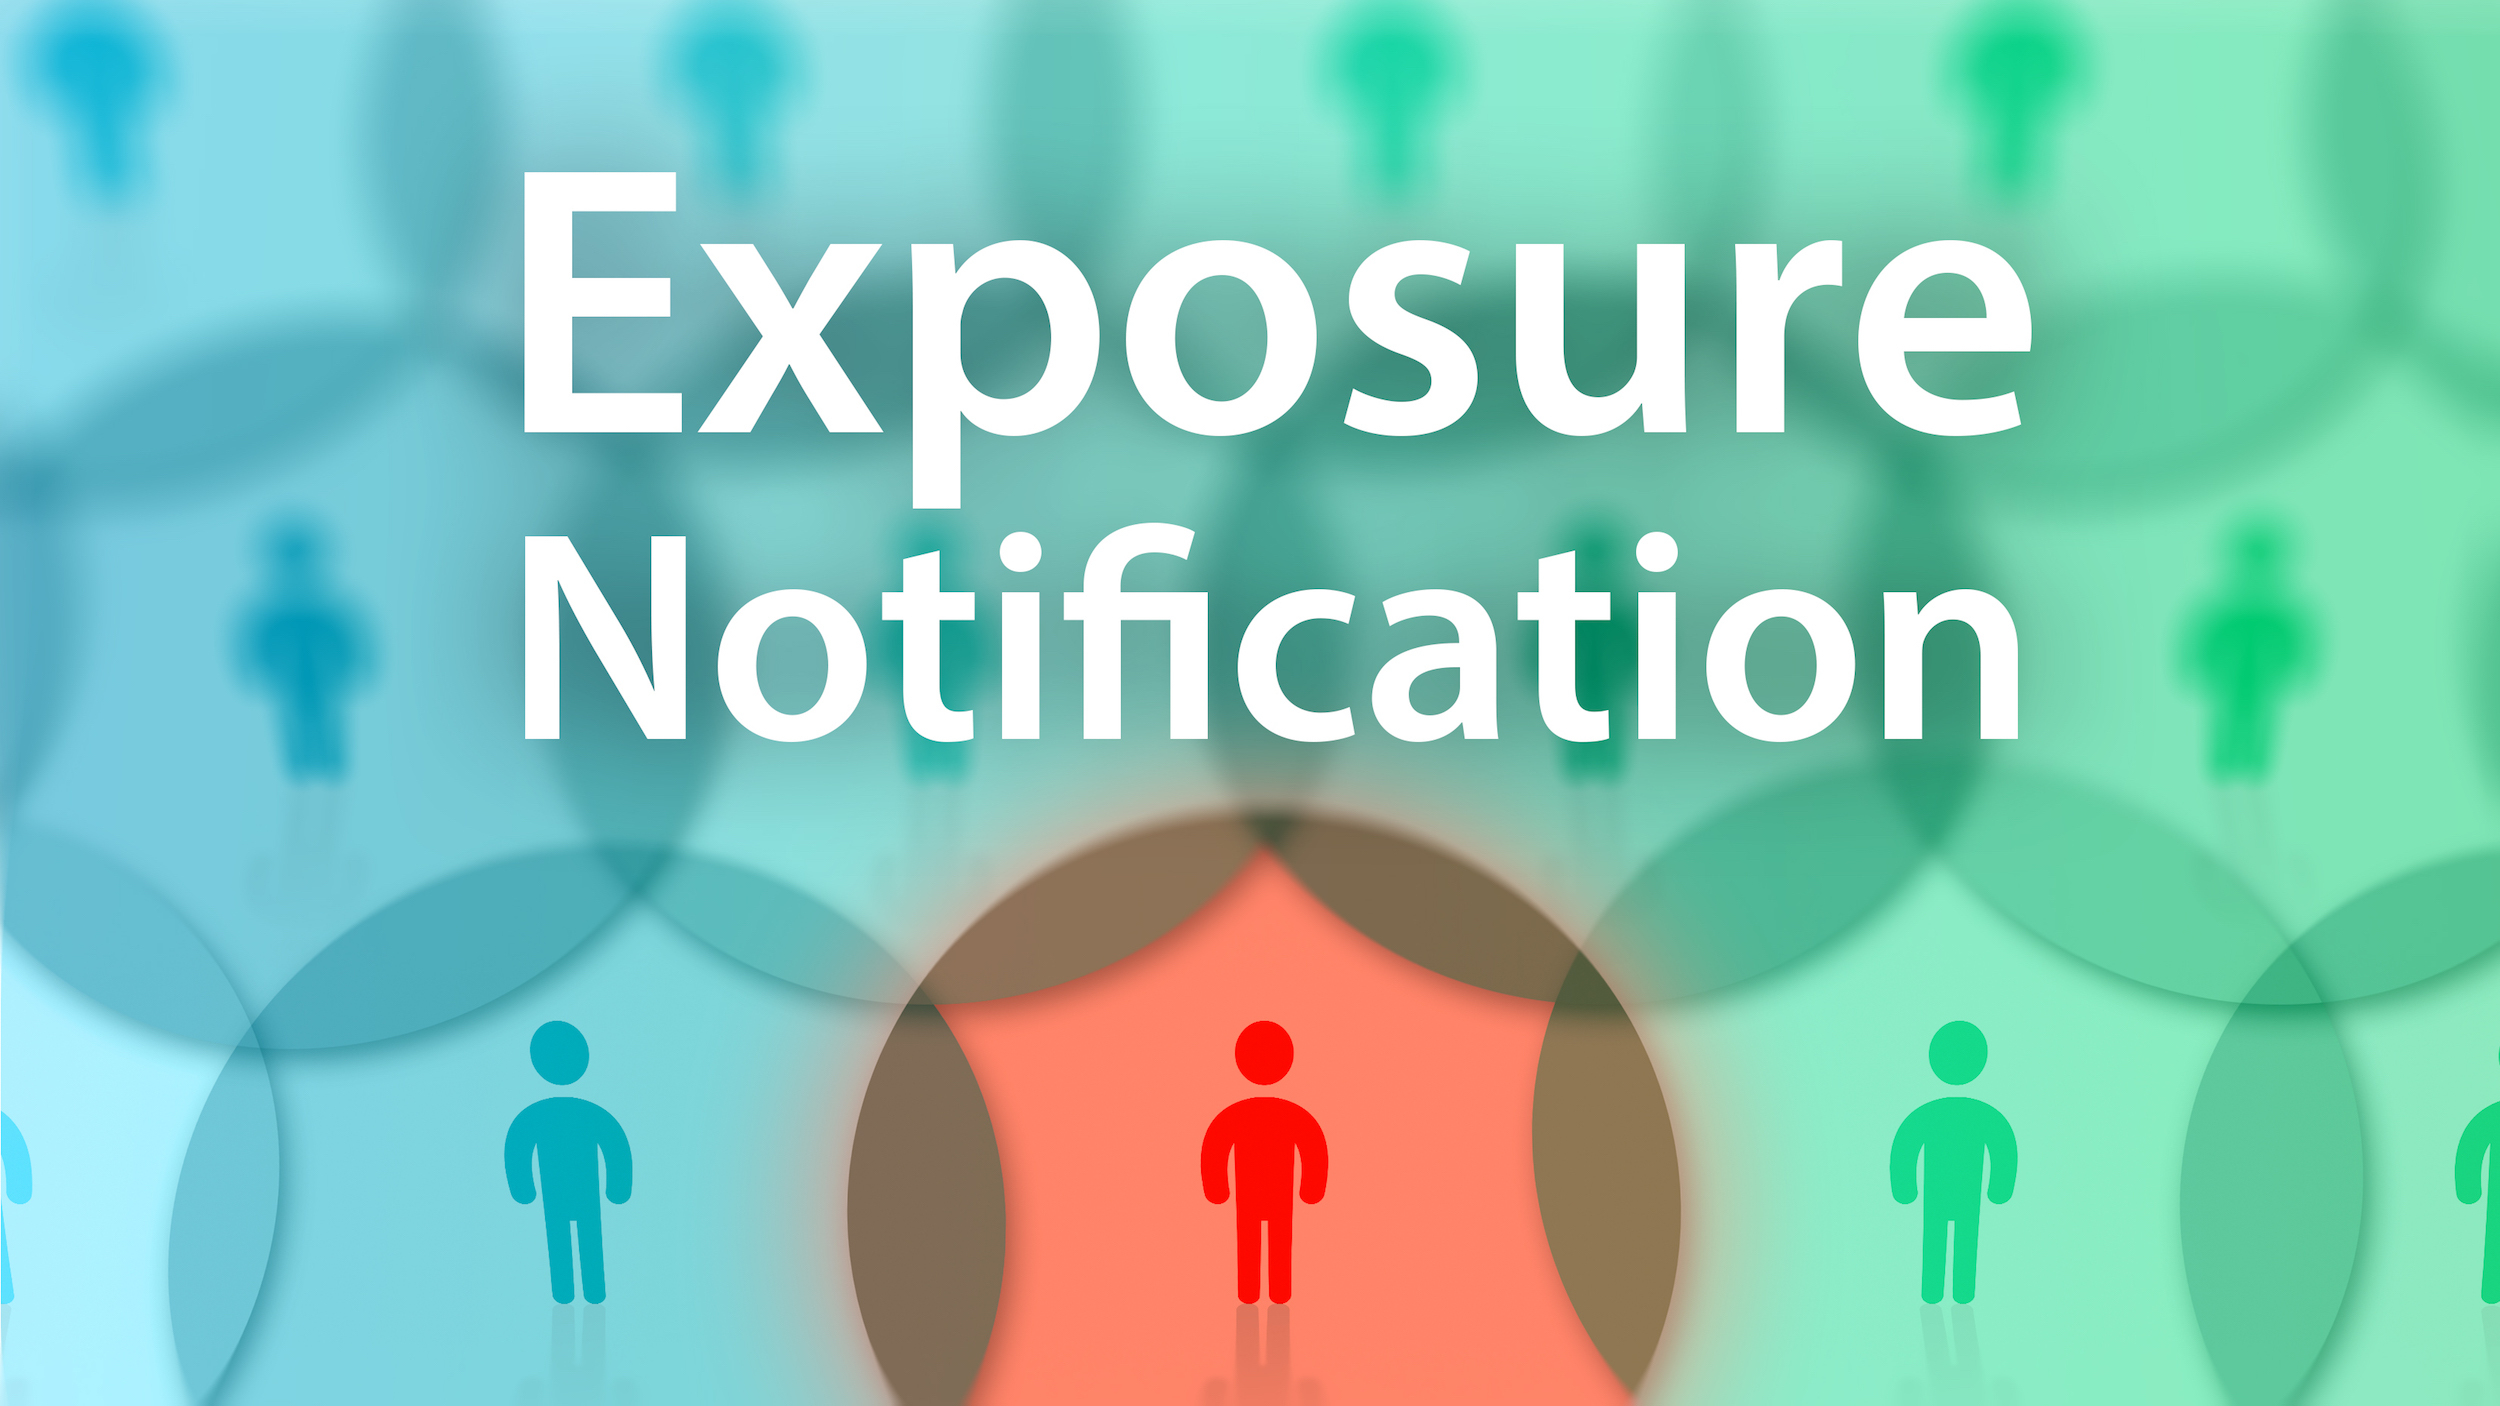 exposure notification cartoon